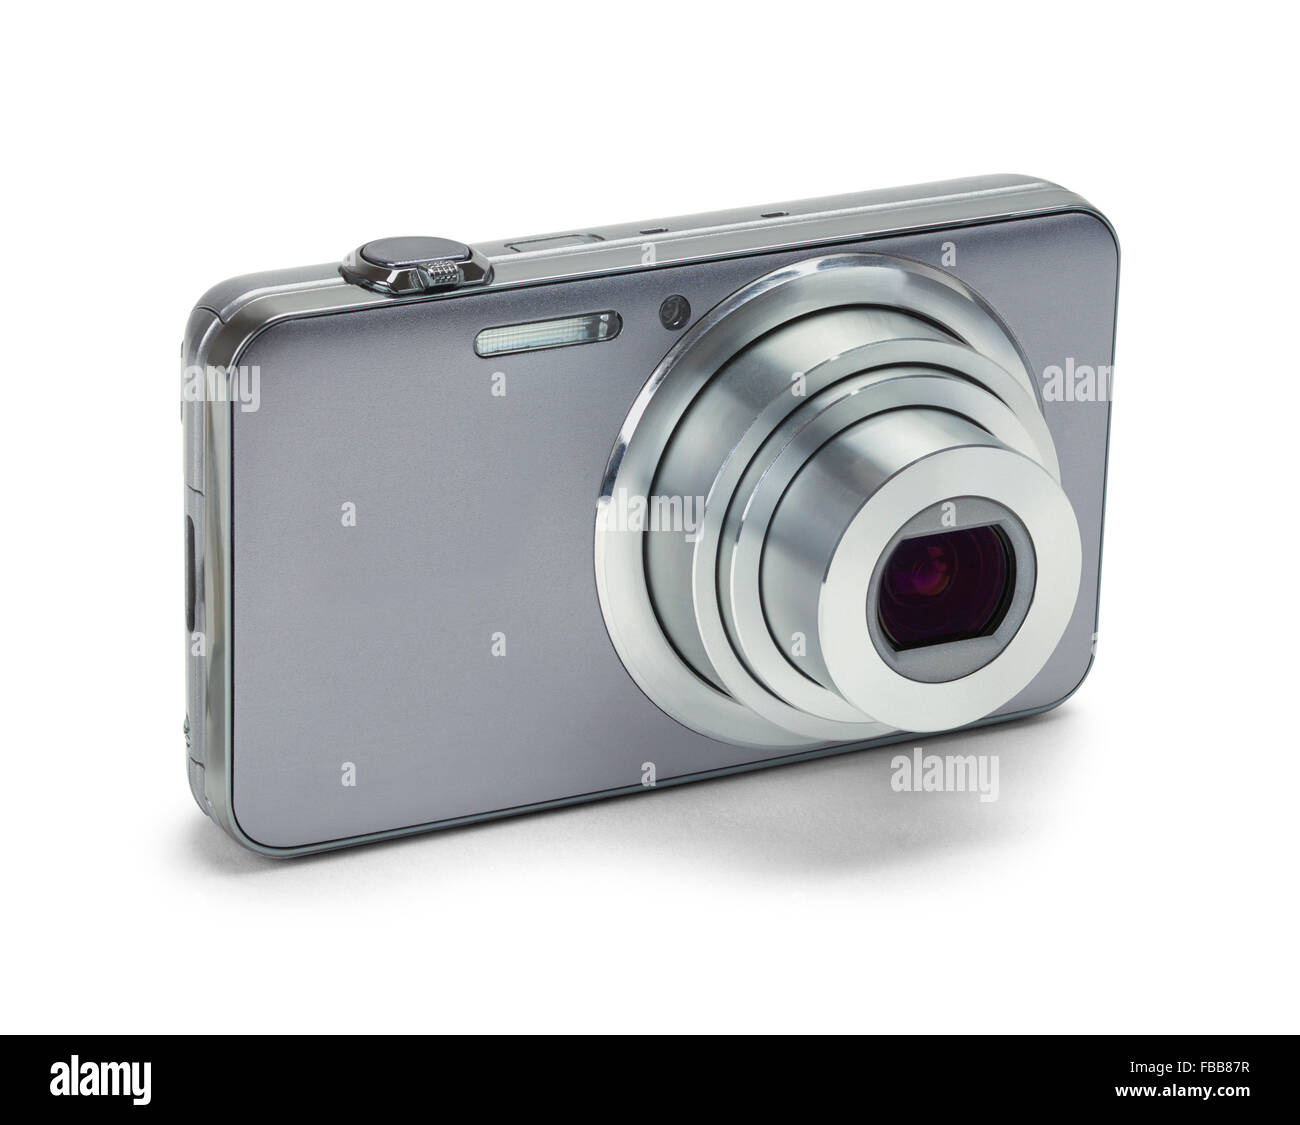 Point and Shoot Silver Camera Isolated on a White Background. - Stock Image